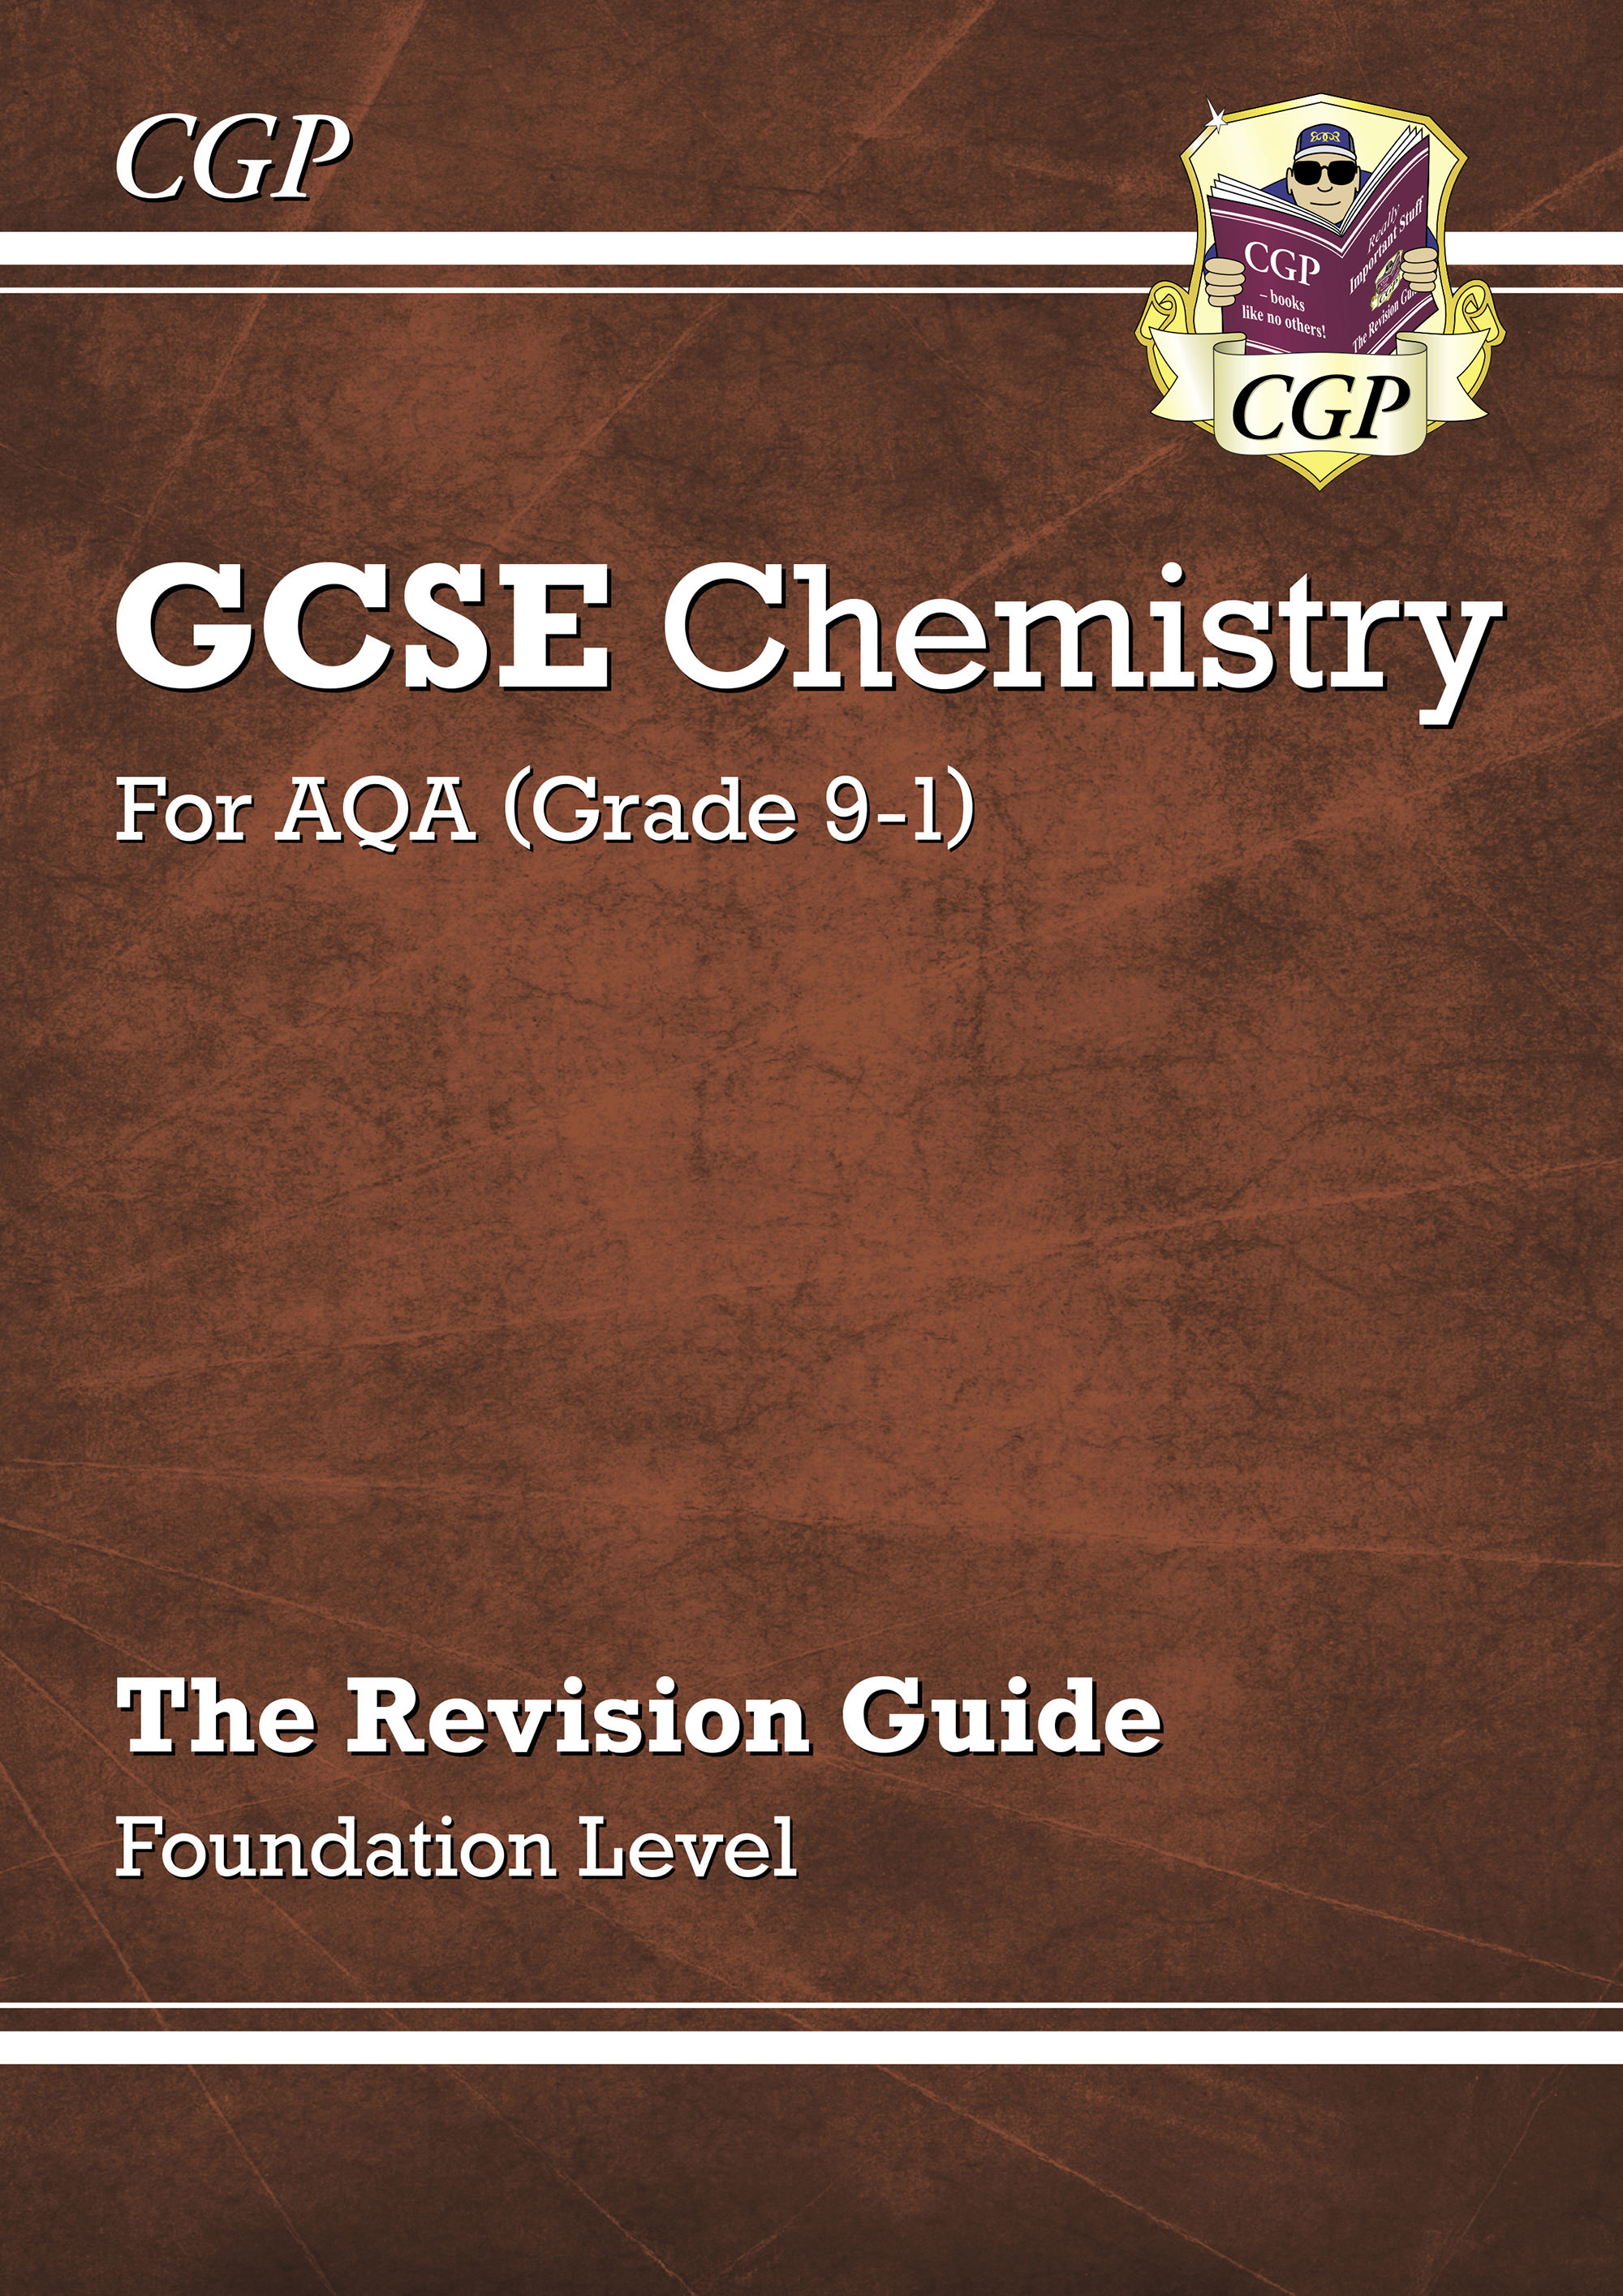 CAFR41D - New Grade 9-1 GCSE Chemistry: AQA Revision Guide Online Edition - Foundation